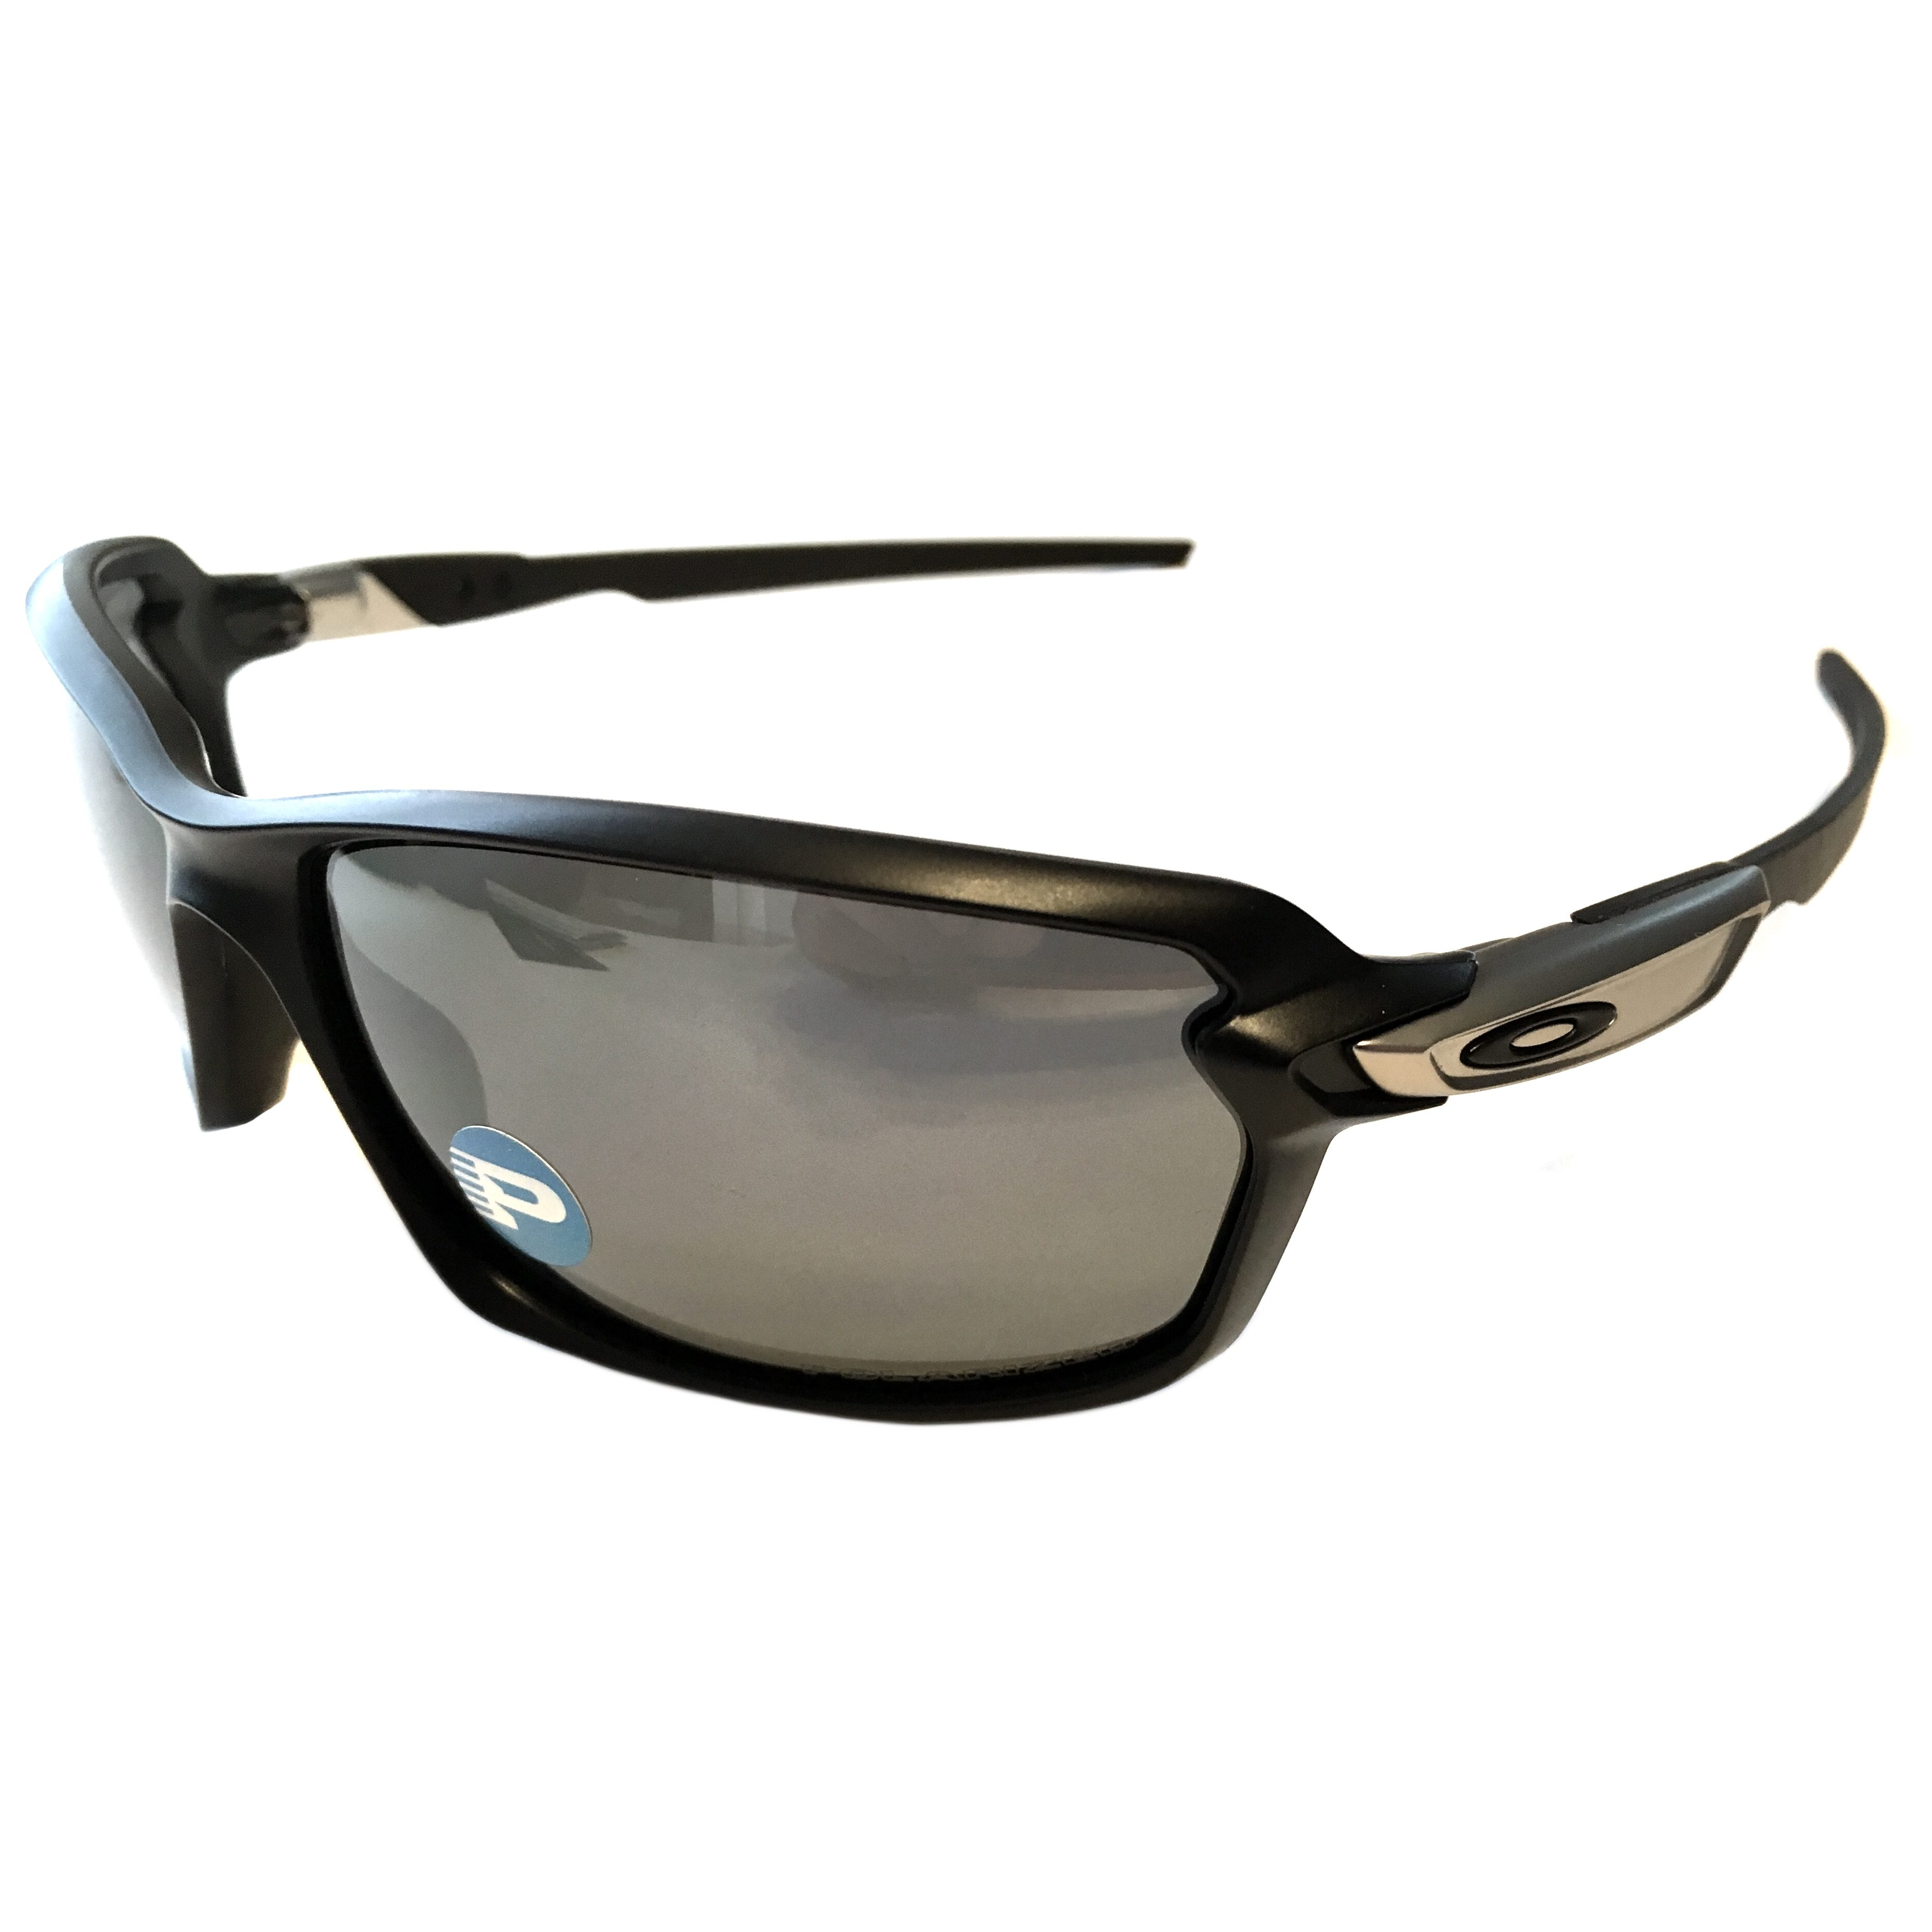 ee9023df5723a Oakley Carbon Shift Sunglasses Matte Black POLARIZED Black Iridium OO9302-03